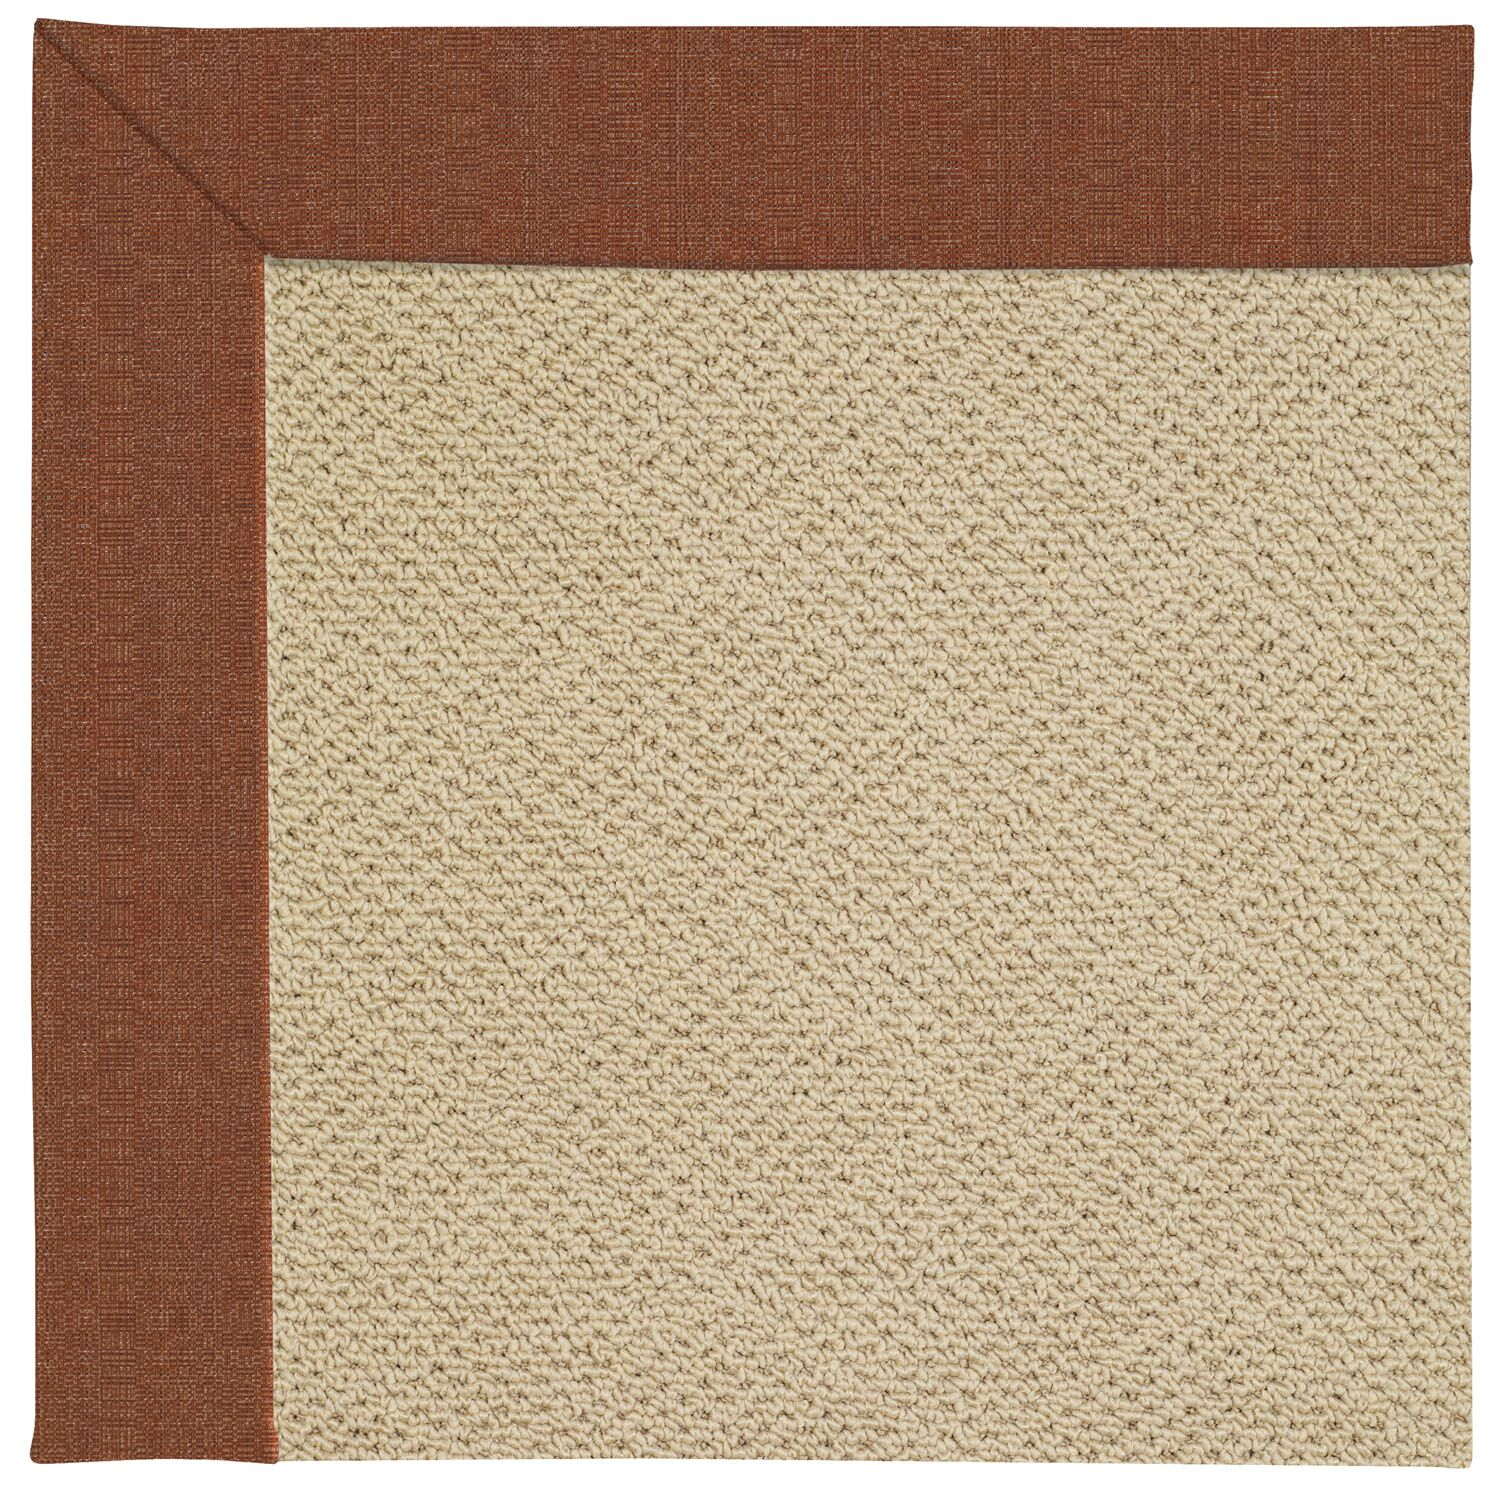 Lisle Machine Tufted Dried Chilis/Beige Indoor/Outdoor Area Rug Rug Size: Square 10'